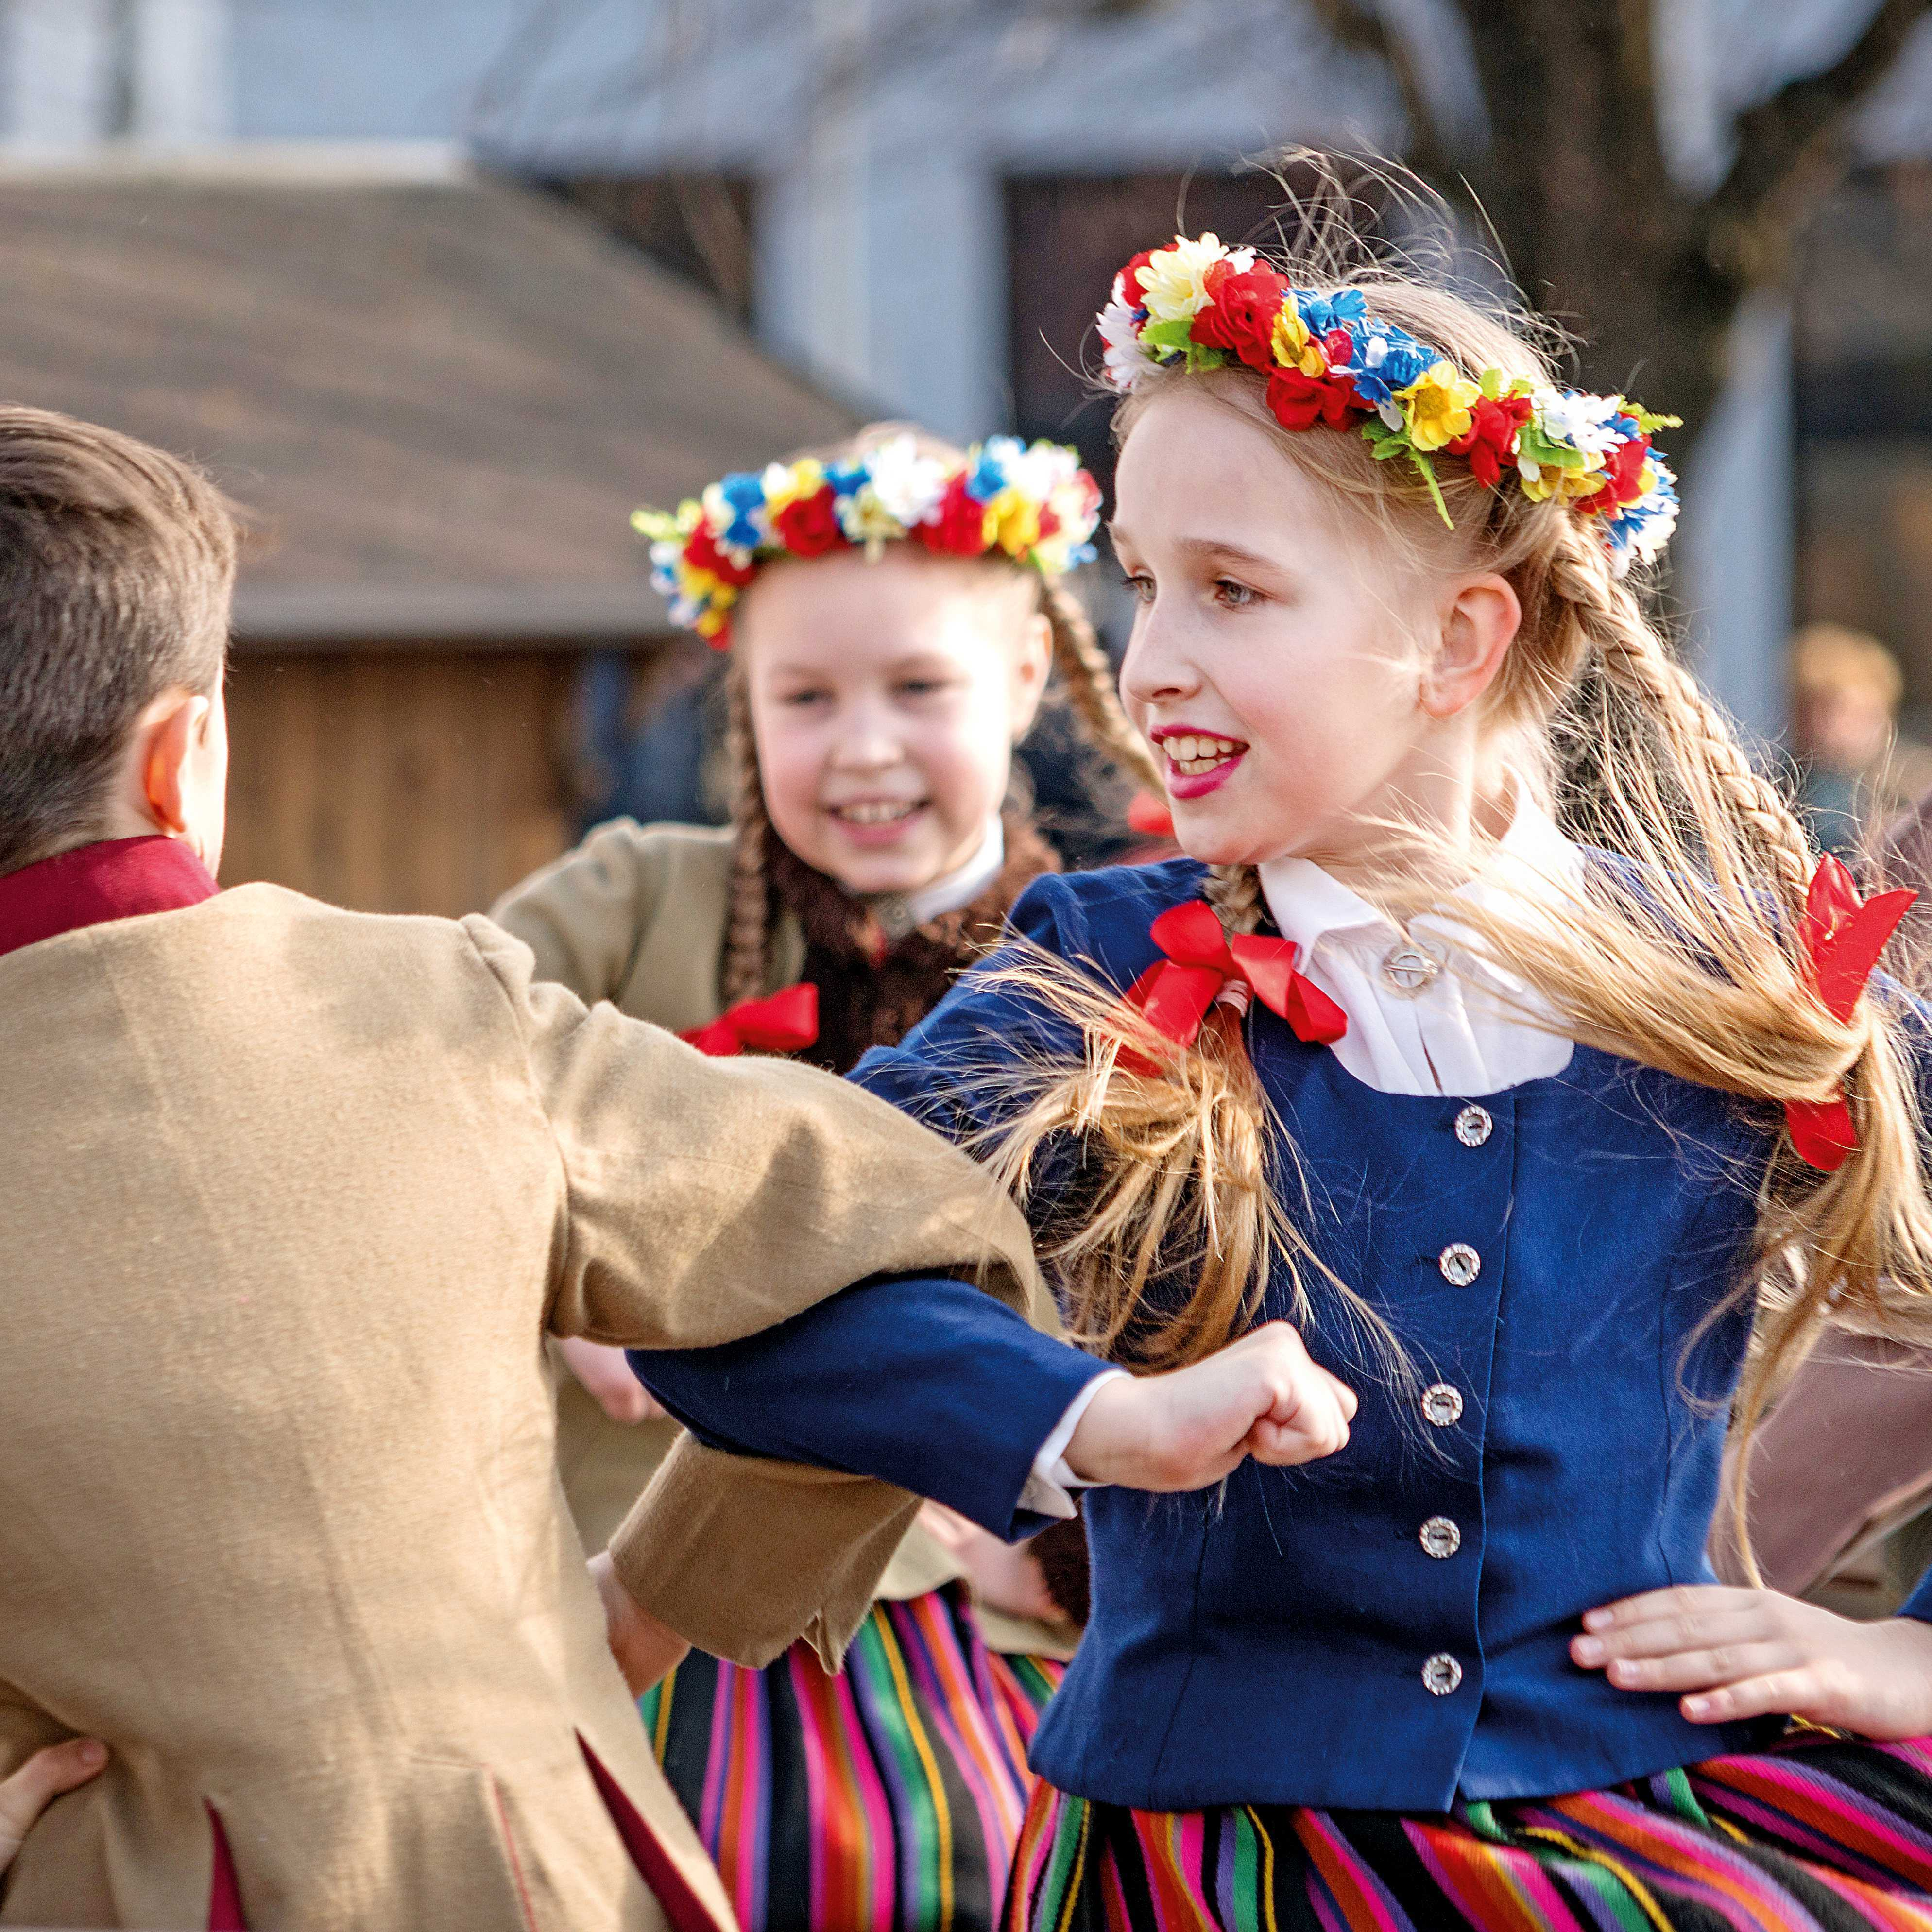 Get to know folk traditions